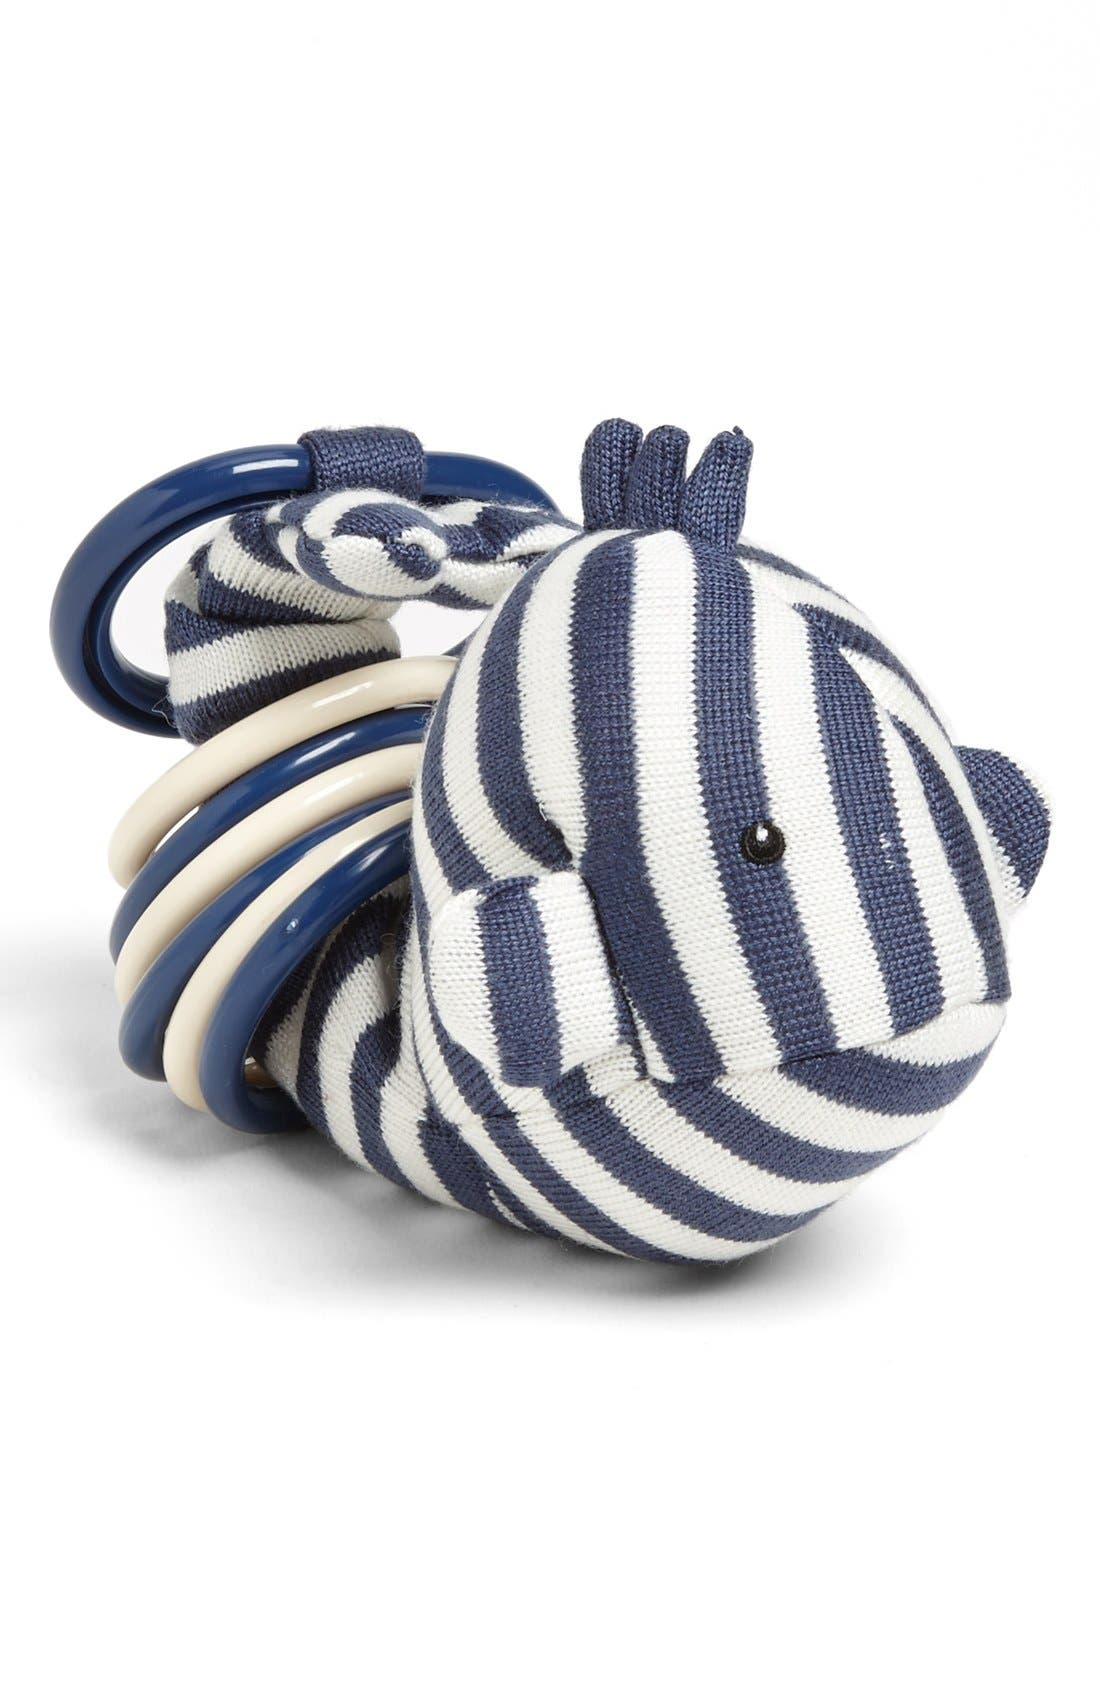 'Clicketty Walter Whale' Ring Toy,                             Main thumbnail 1, color,                             450